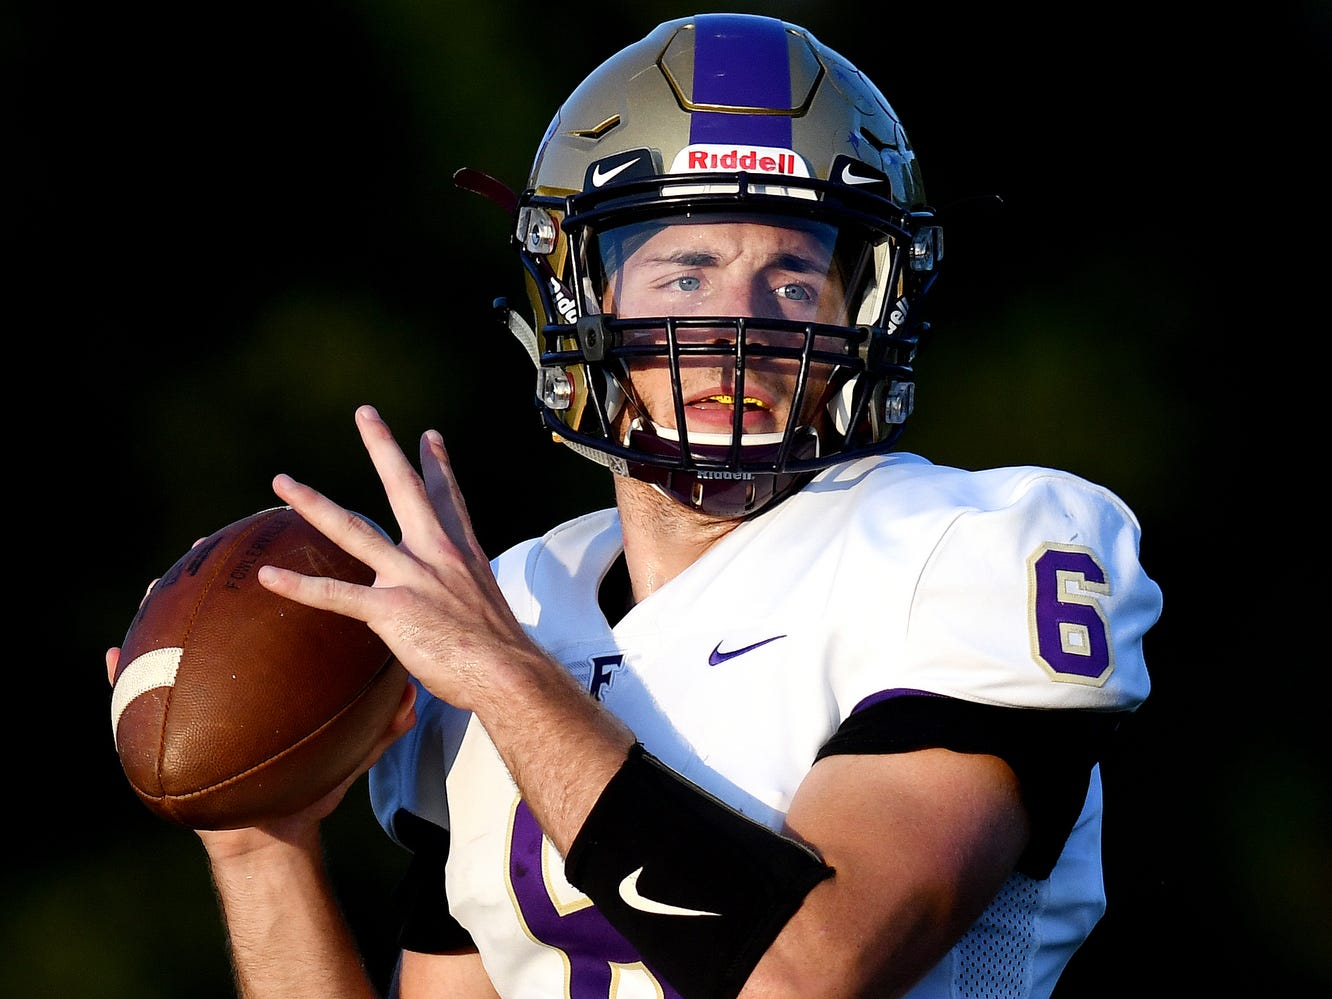 Fowlerville's quarterback Geoffrey Knaggs looks to throw during the first quarter on Friday, Sept. 14, 2018, at Haslett High School.